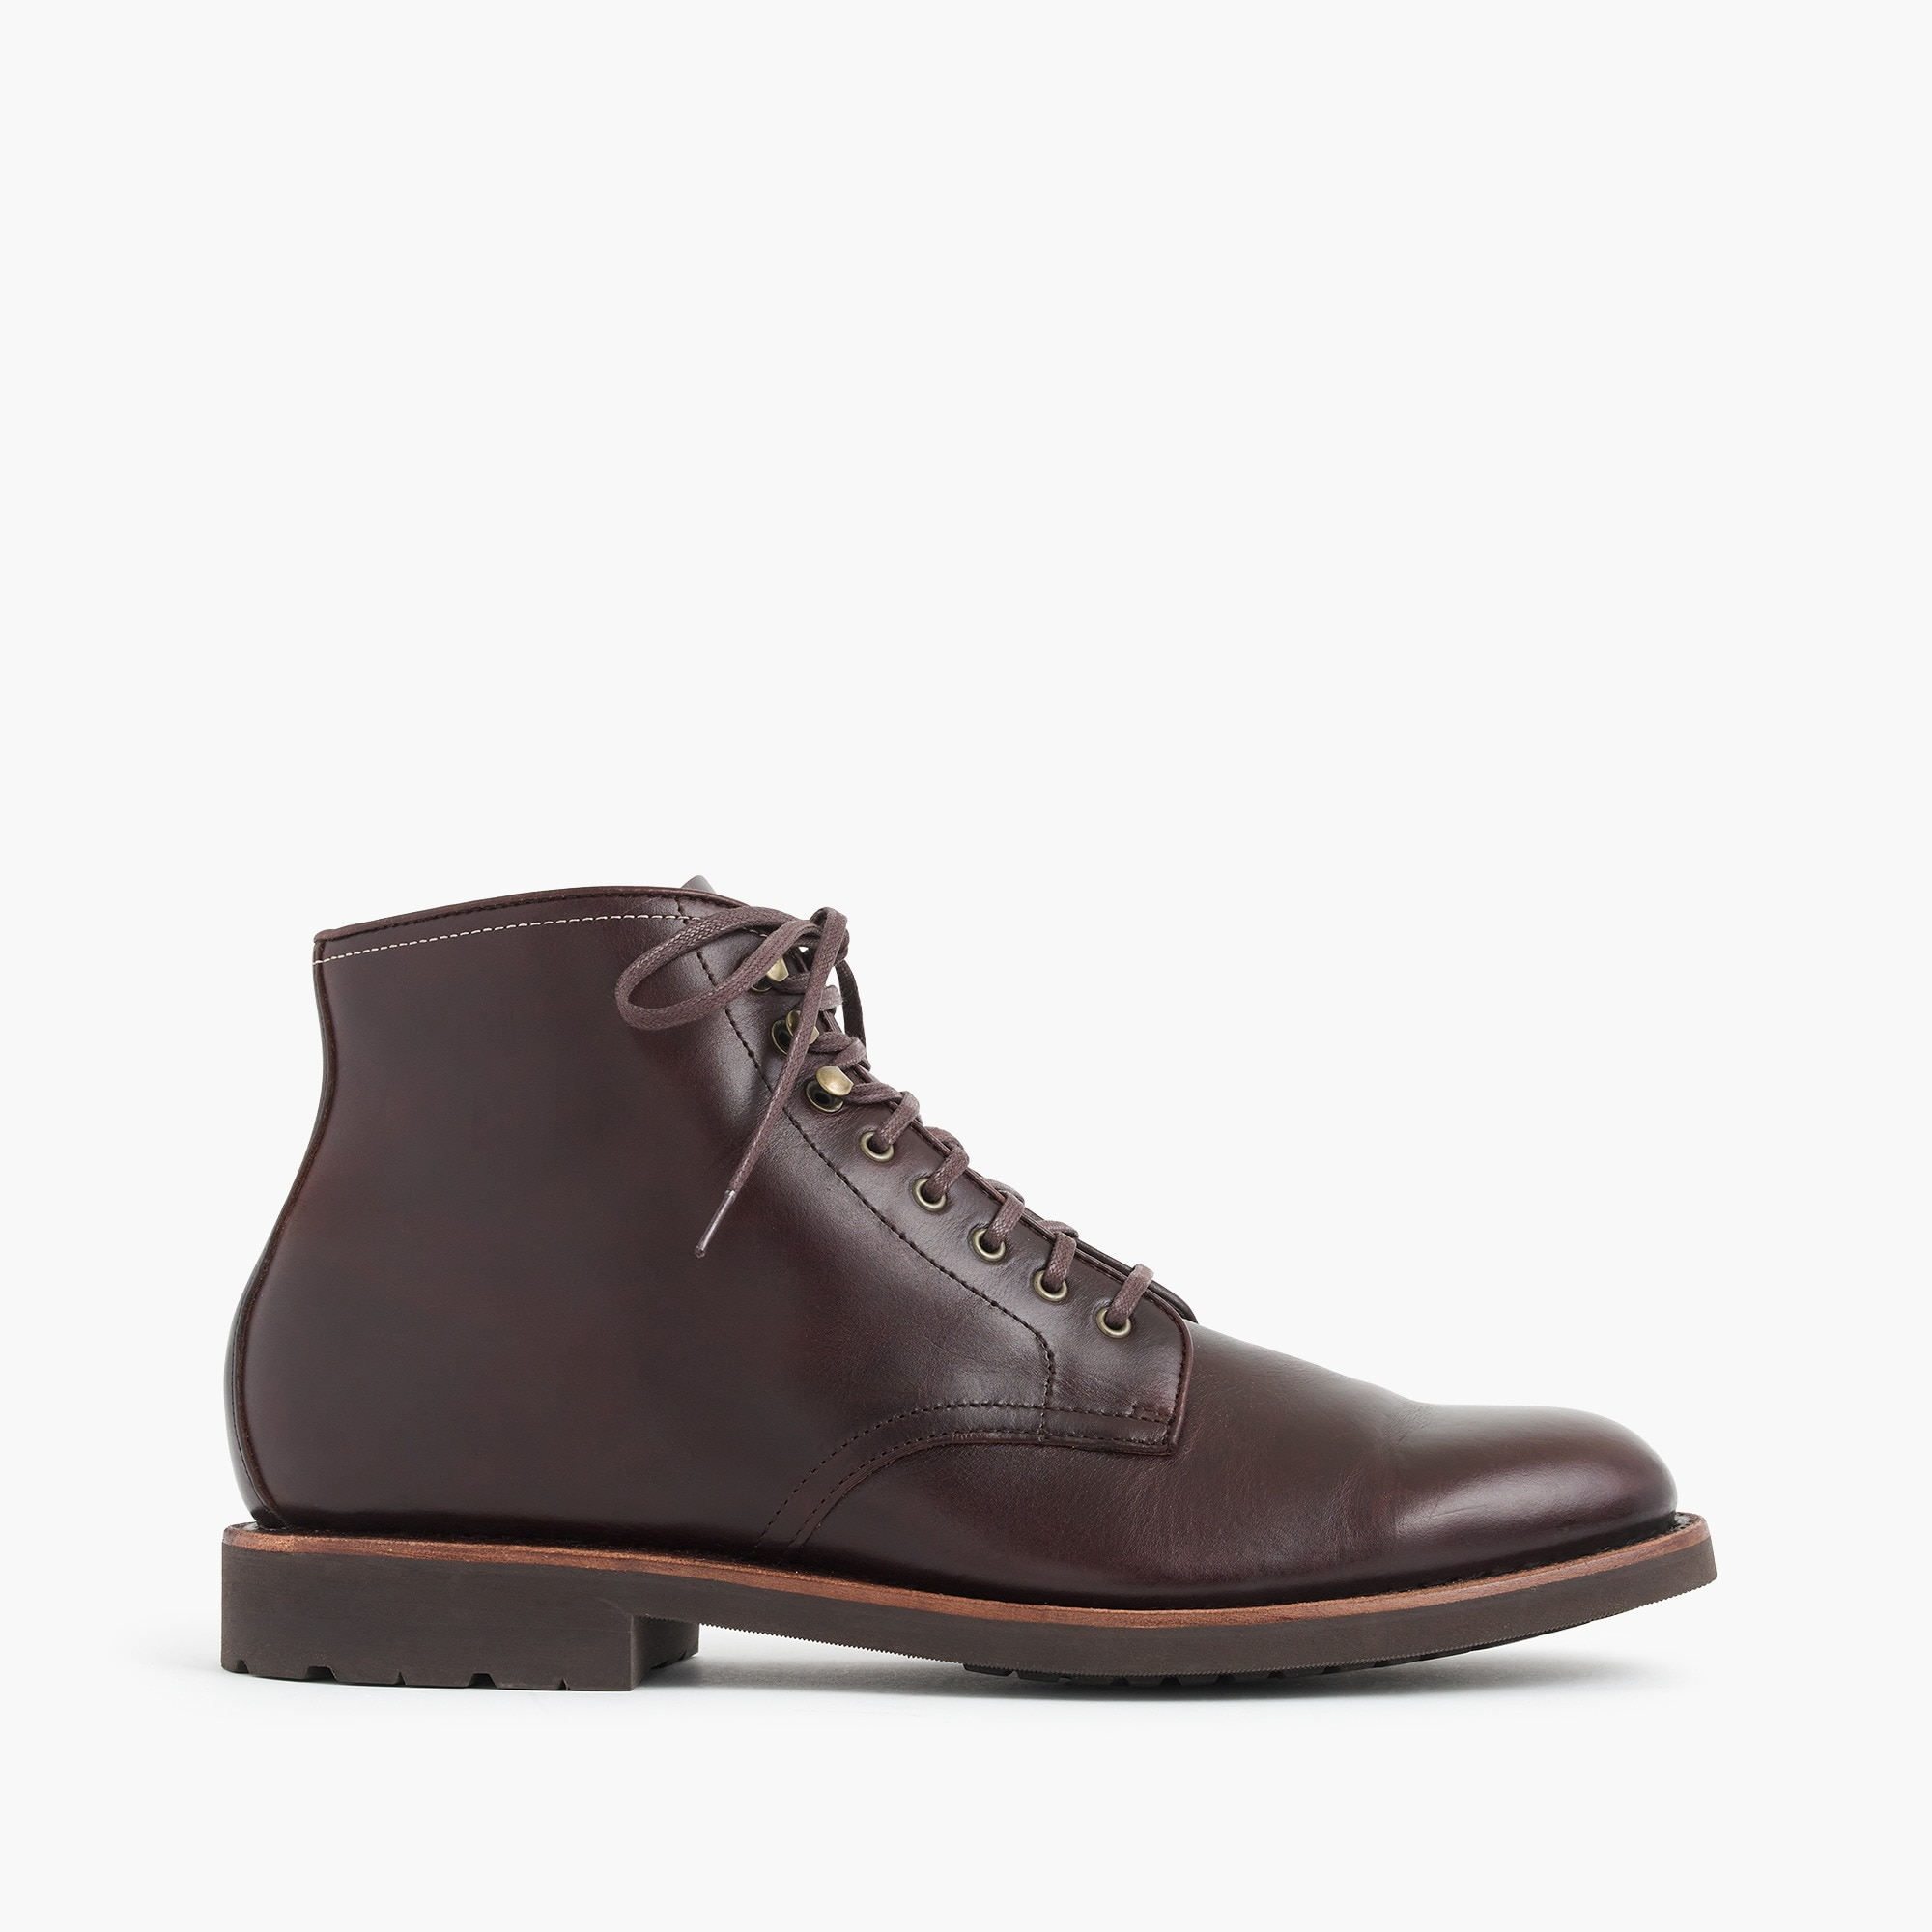 Kenton plain-toe boots